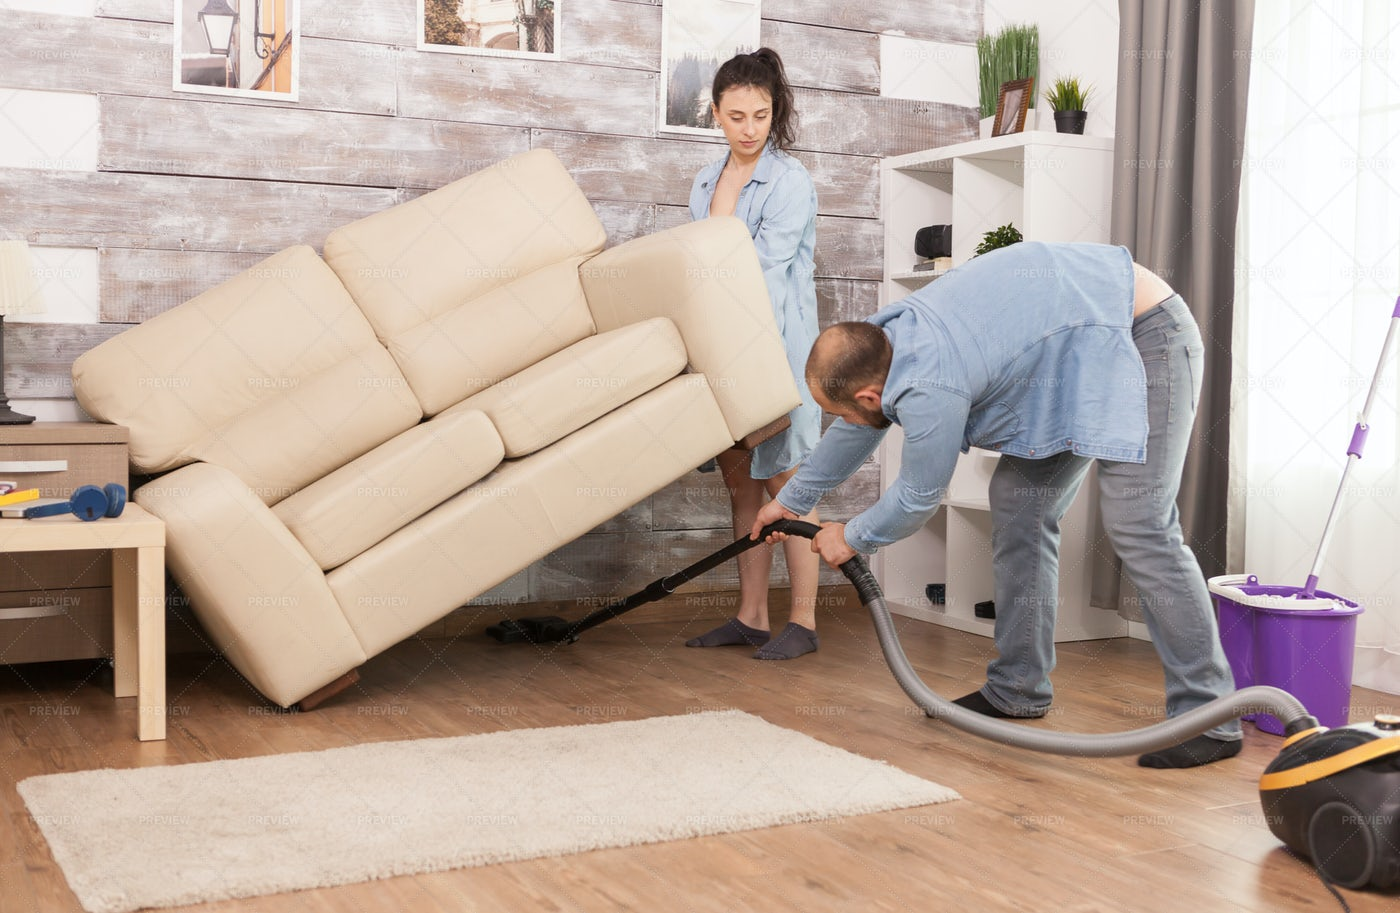 Cleaning Under Sofa: Stock Photos